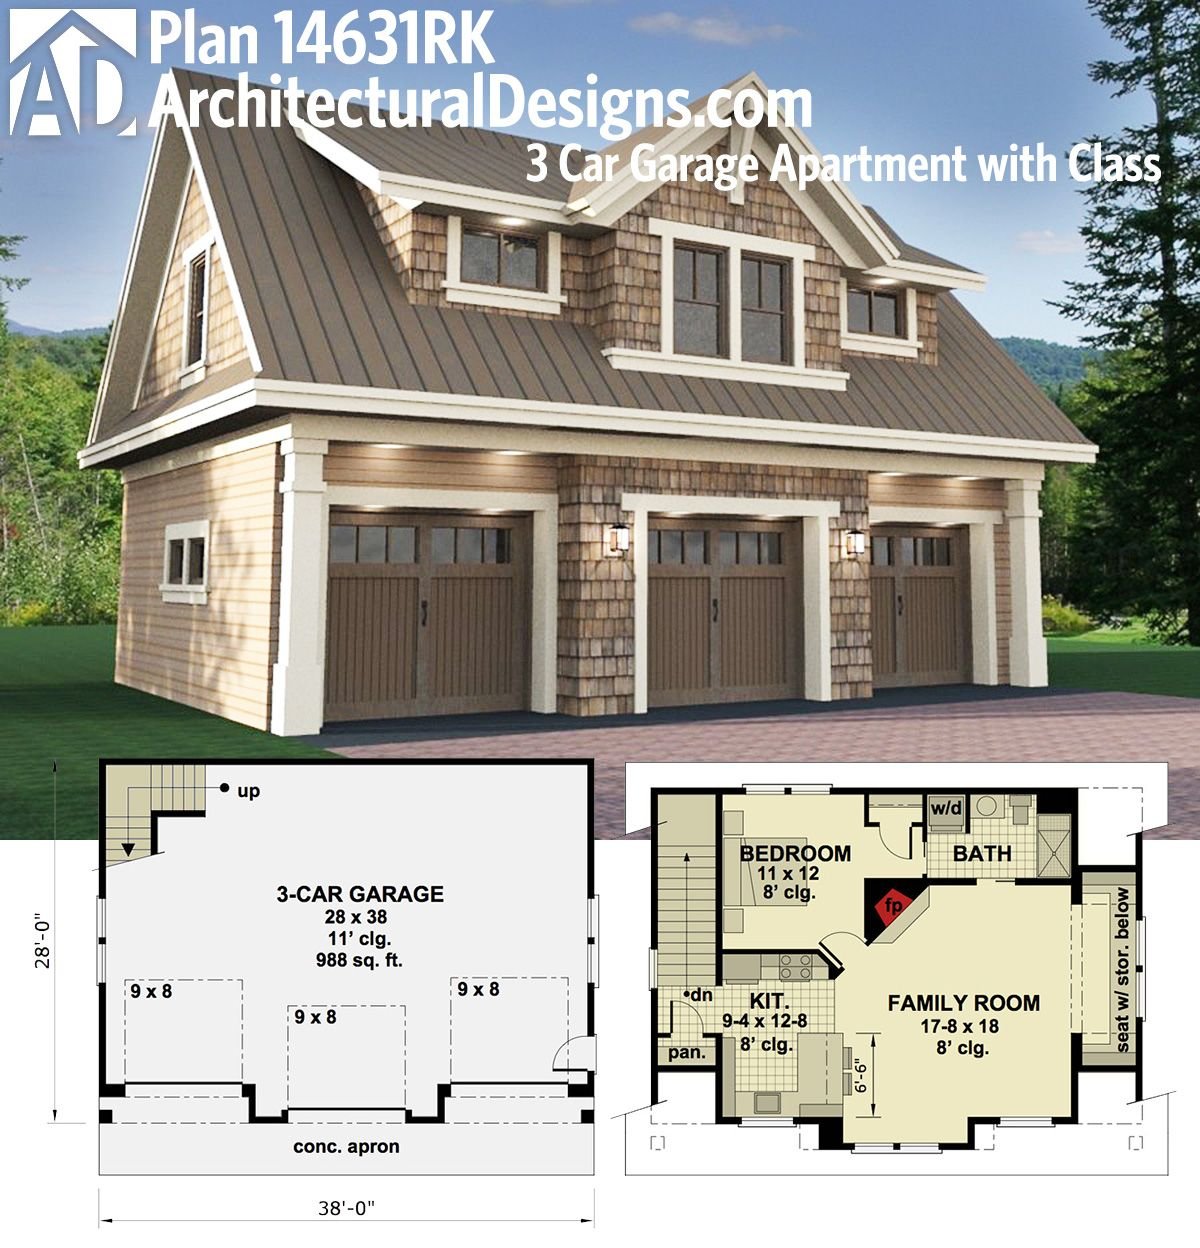 Plan 14631rk 3 Car Garage Apartment With Class Pinterest Carriage House Plans Carriage